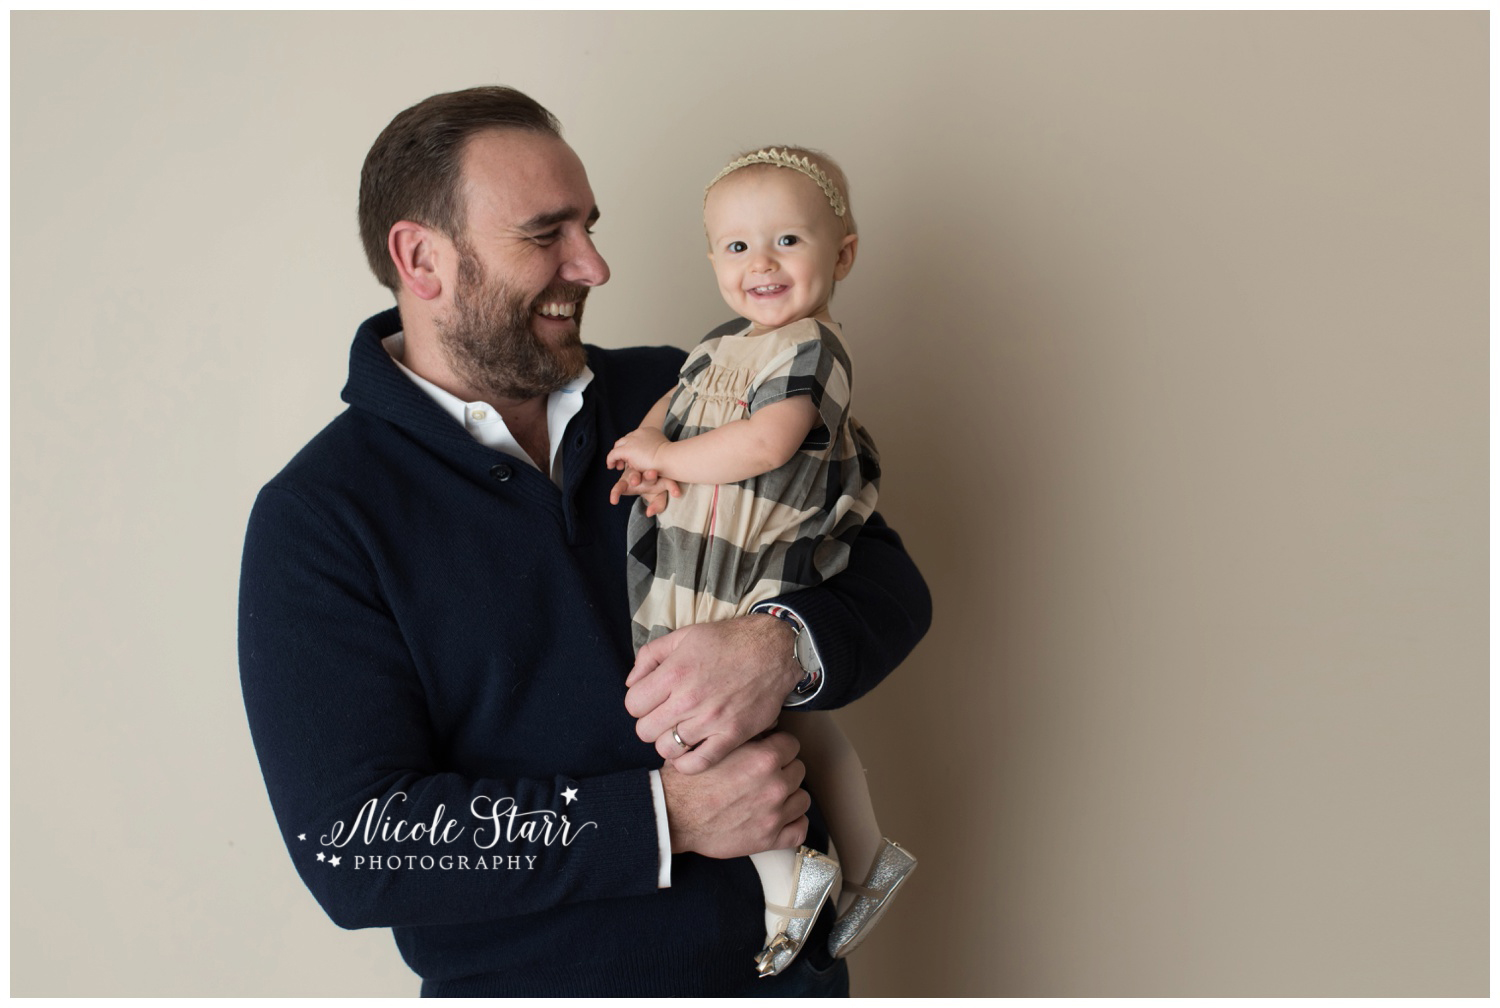 Nicole Starr Photography | Saratoga Springs Cake Smash Photographer | Boston Cake Smash Photographer | Saratoga Springs Family Photographer | Boston Family Photographer  |  Albany Cake Smash Photographer